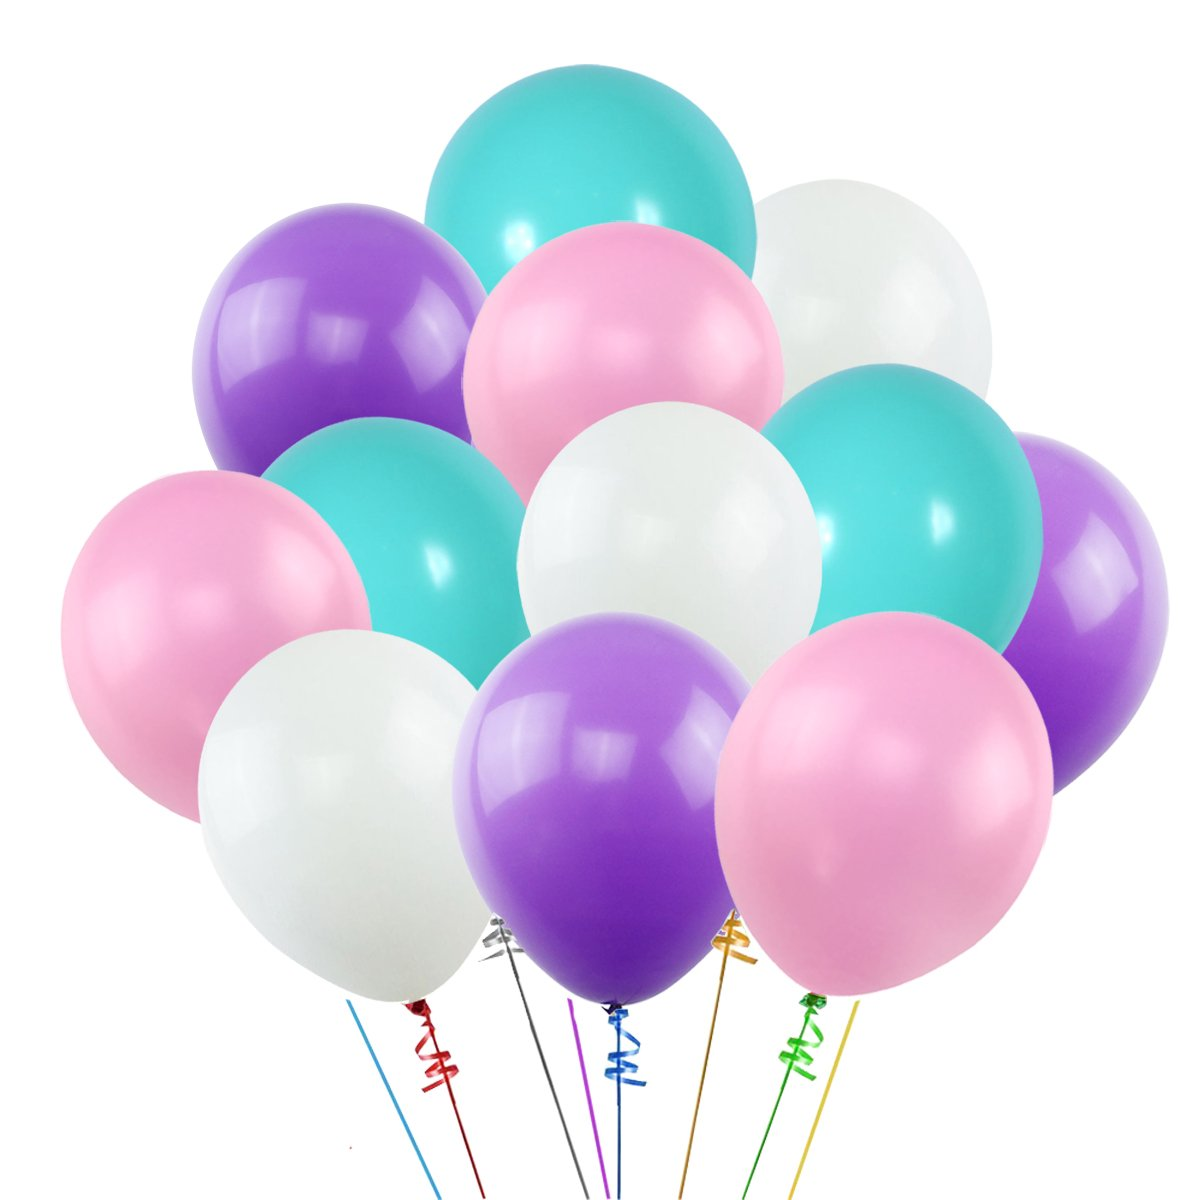 k KUMEED 12 Inch Balloons White Purple Pink Blue Assorted Latex Balloons for Birthday decorations Baby Shower Party Supplies (100 Pcs)